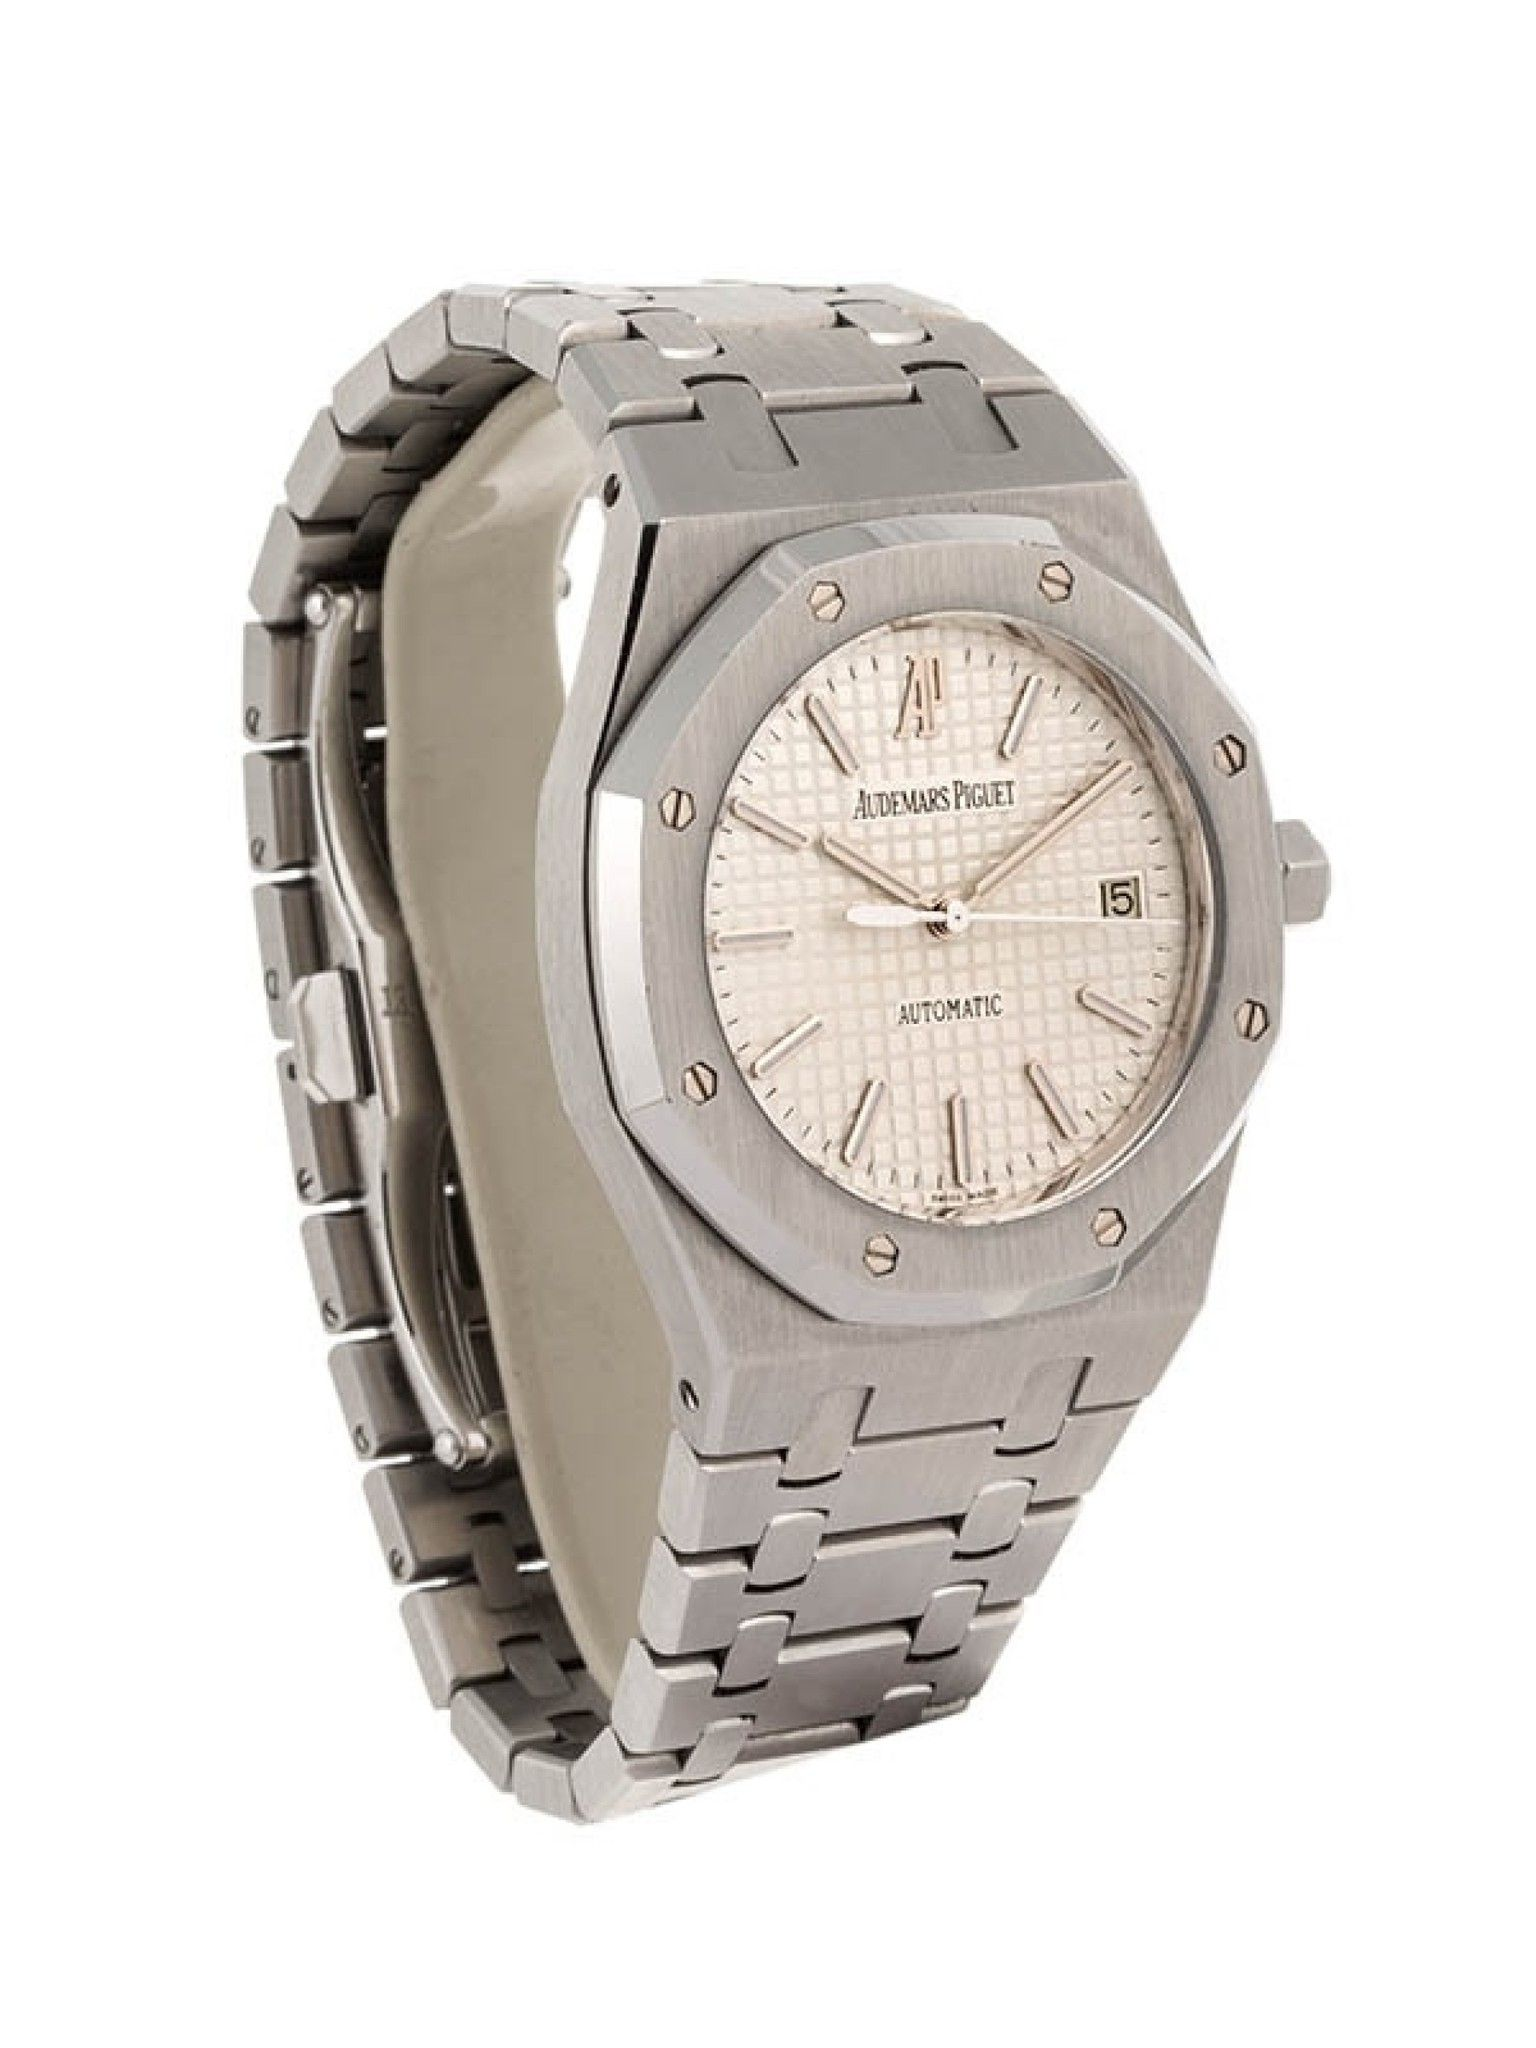 AUDEMARS PIGUET ROYAL OAK SOLO TEMPO 39MM IN ACCIAIO REFERENZA 15300ST